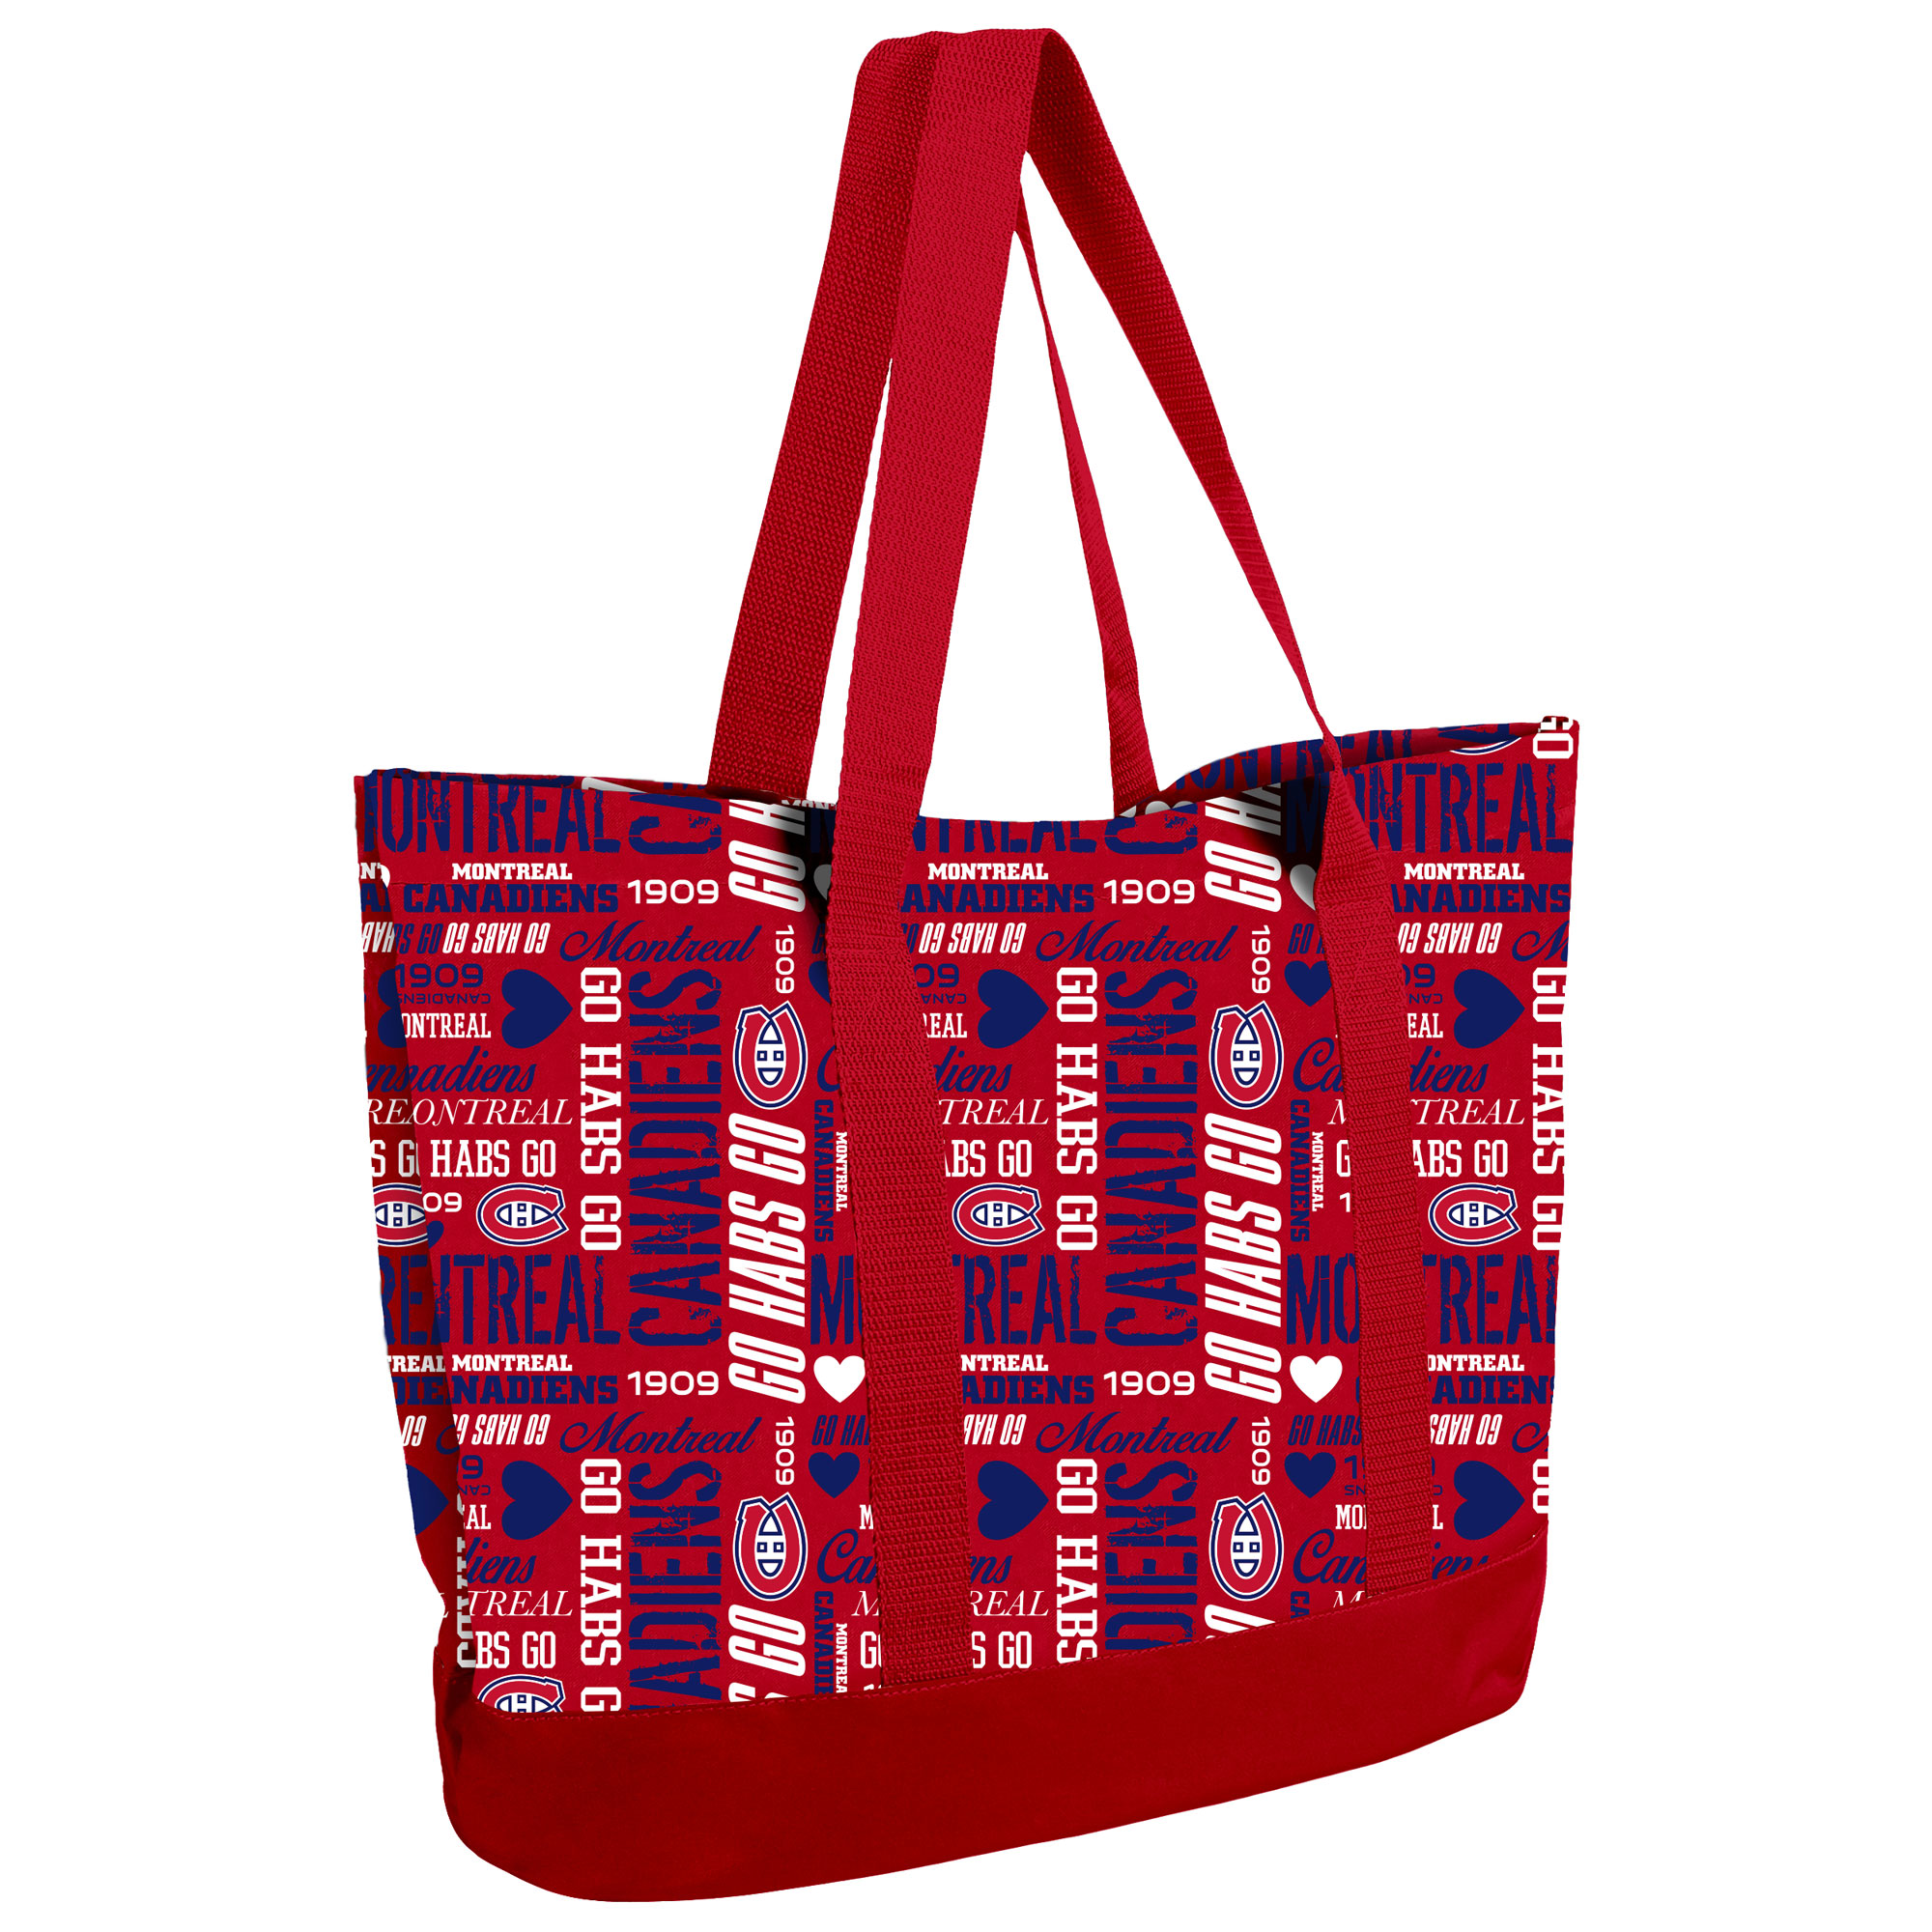 Montreal Canadiens Women's Collage Tote Bag - No Size